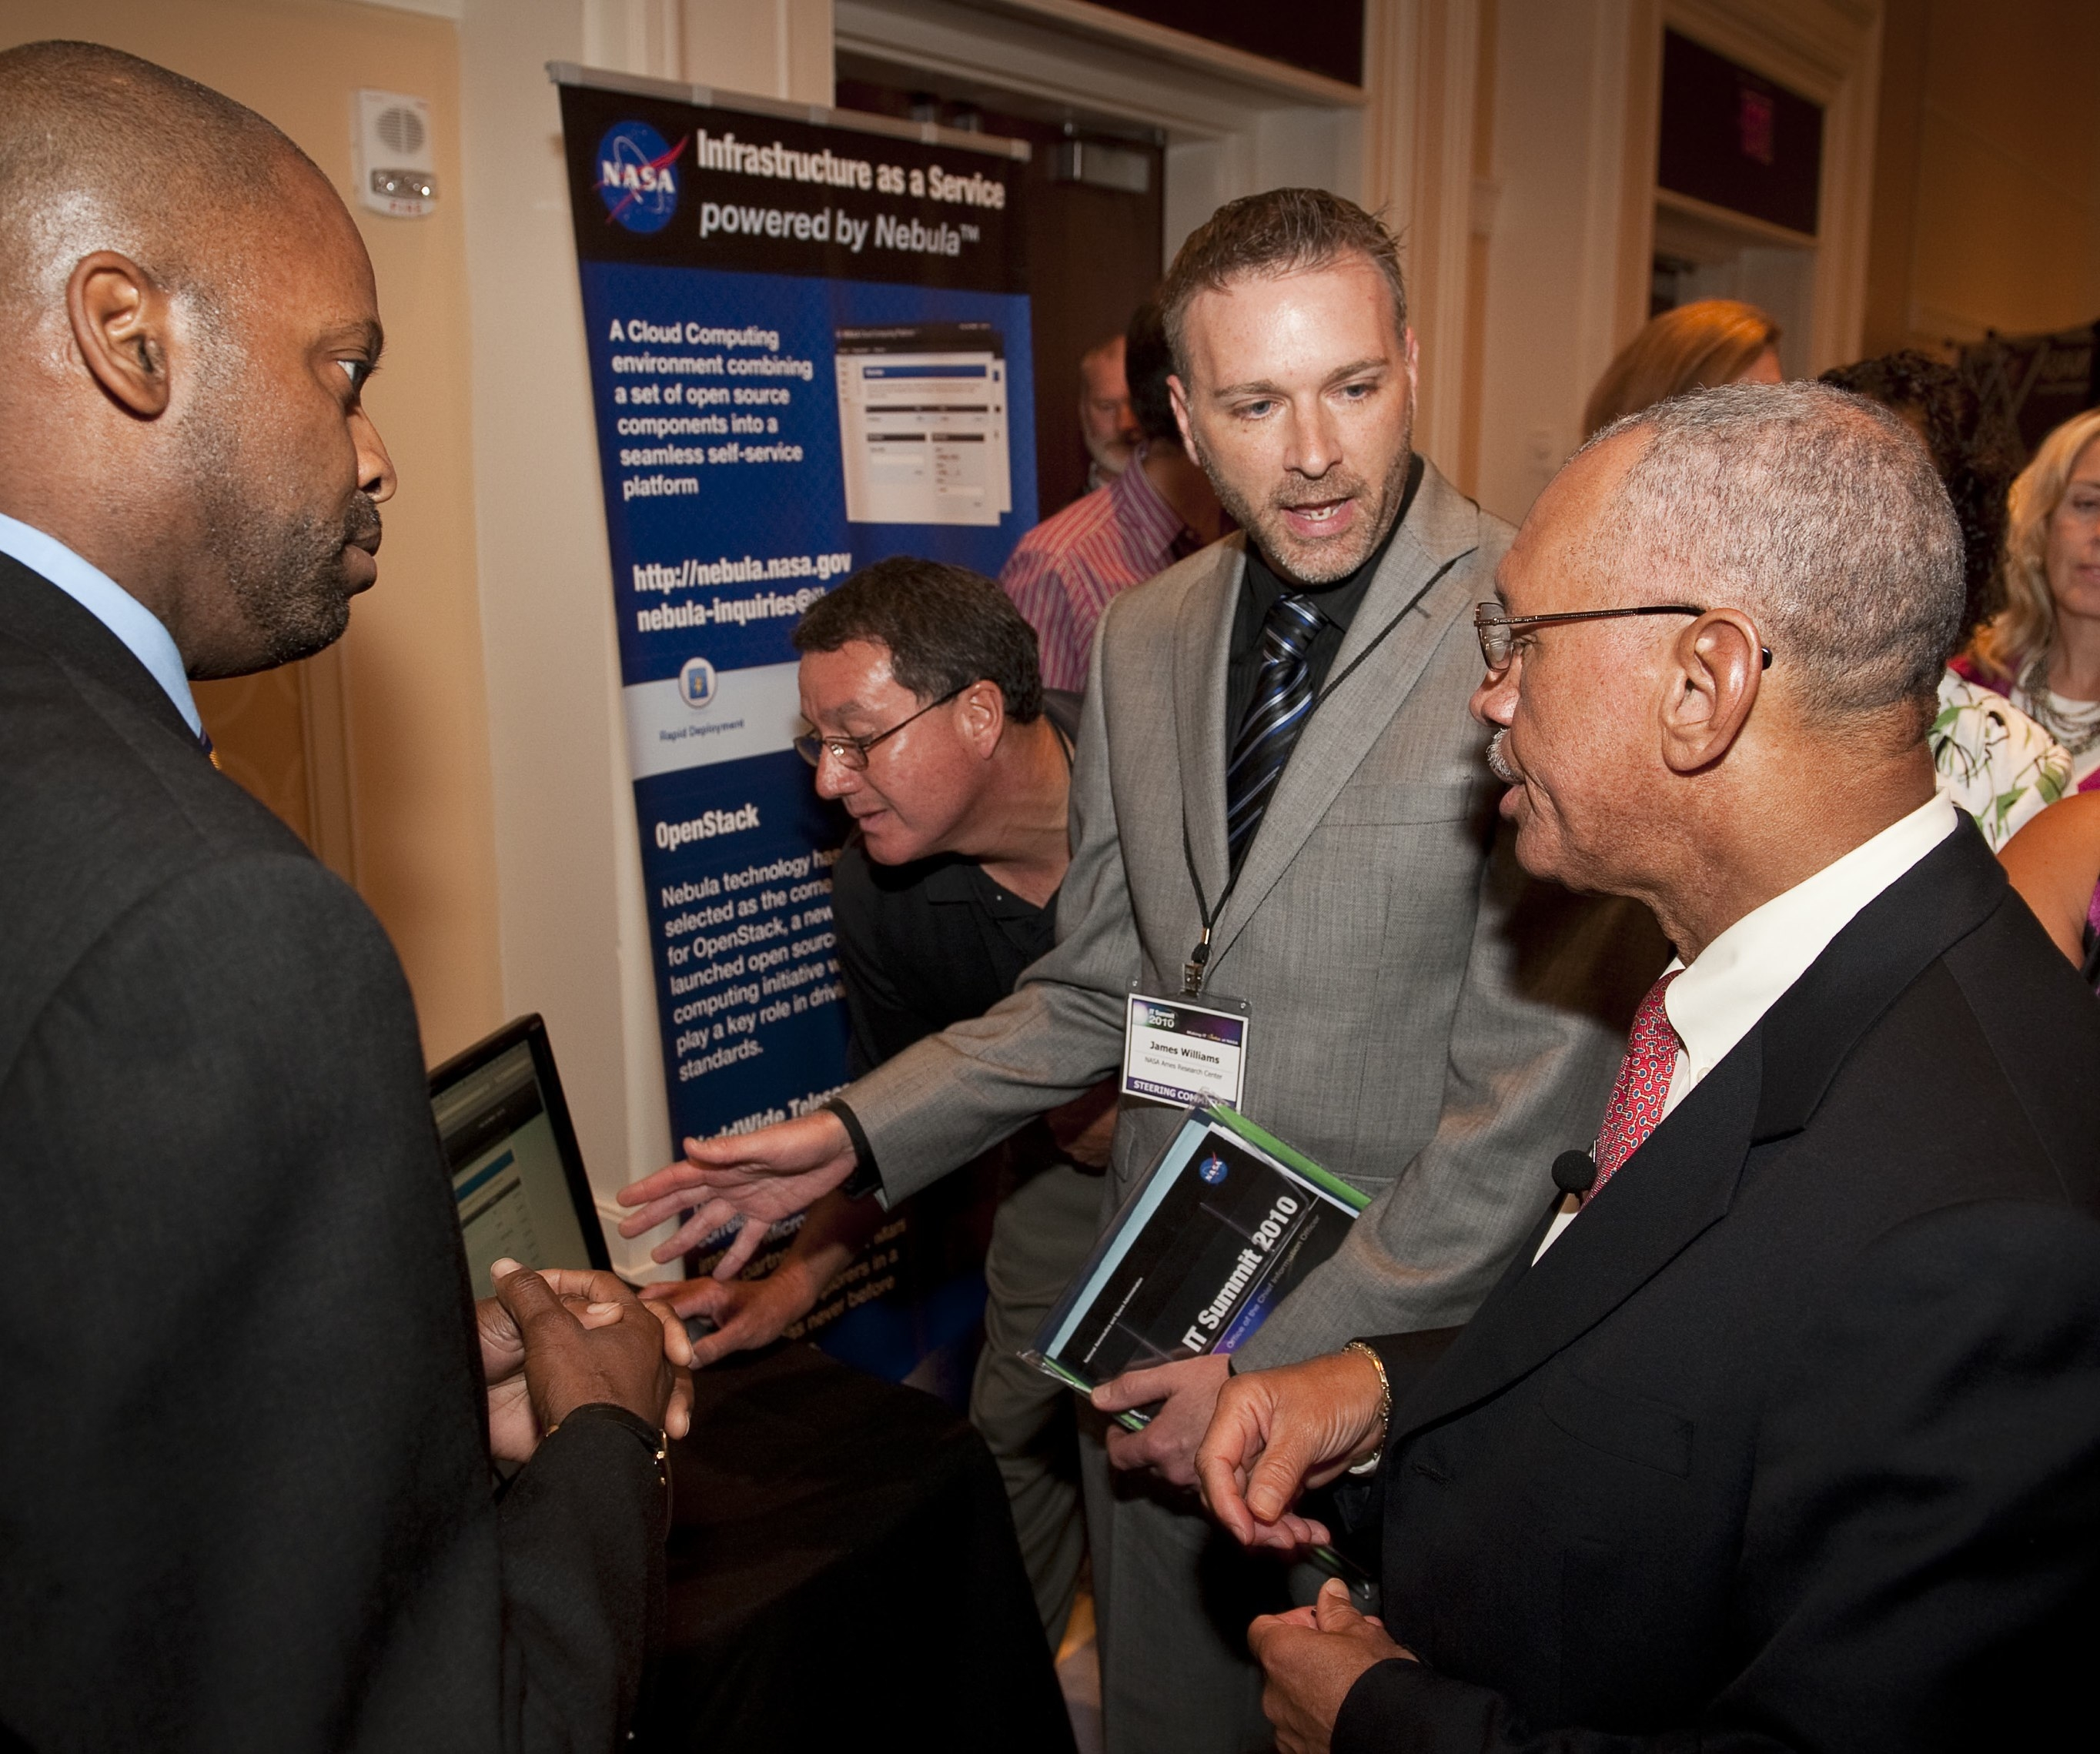 GSFC CIO Adrian Gardner and ARC CIO James Williams discussing NASA Cloud Services with NASA Administrator Bolden